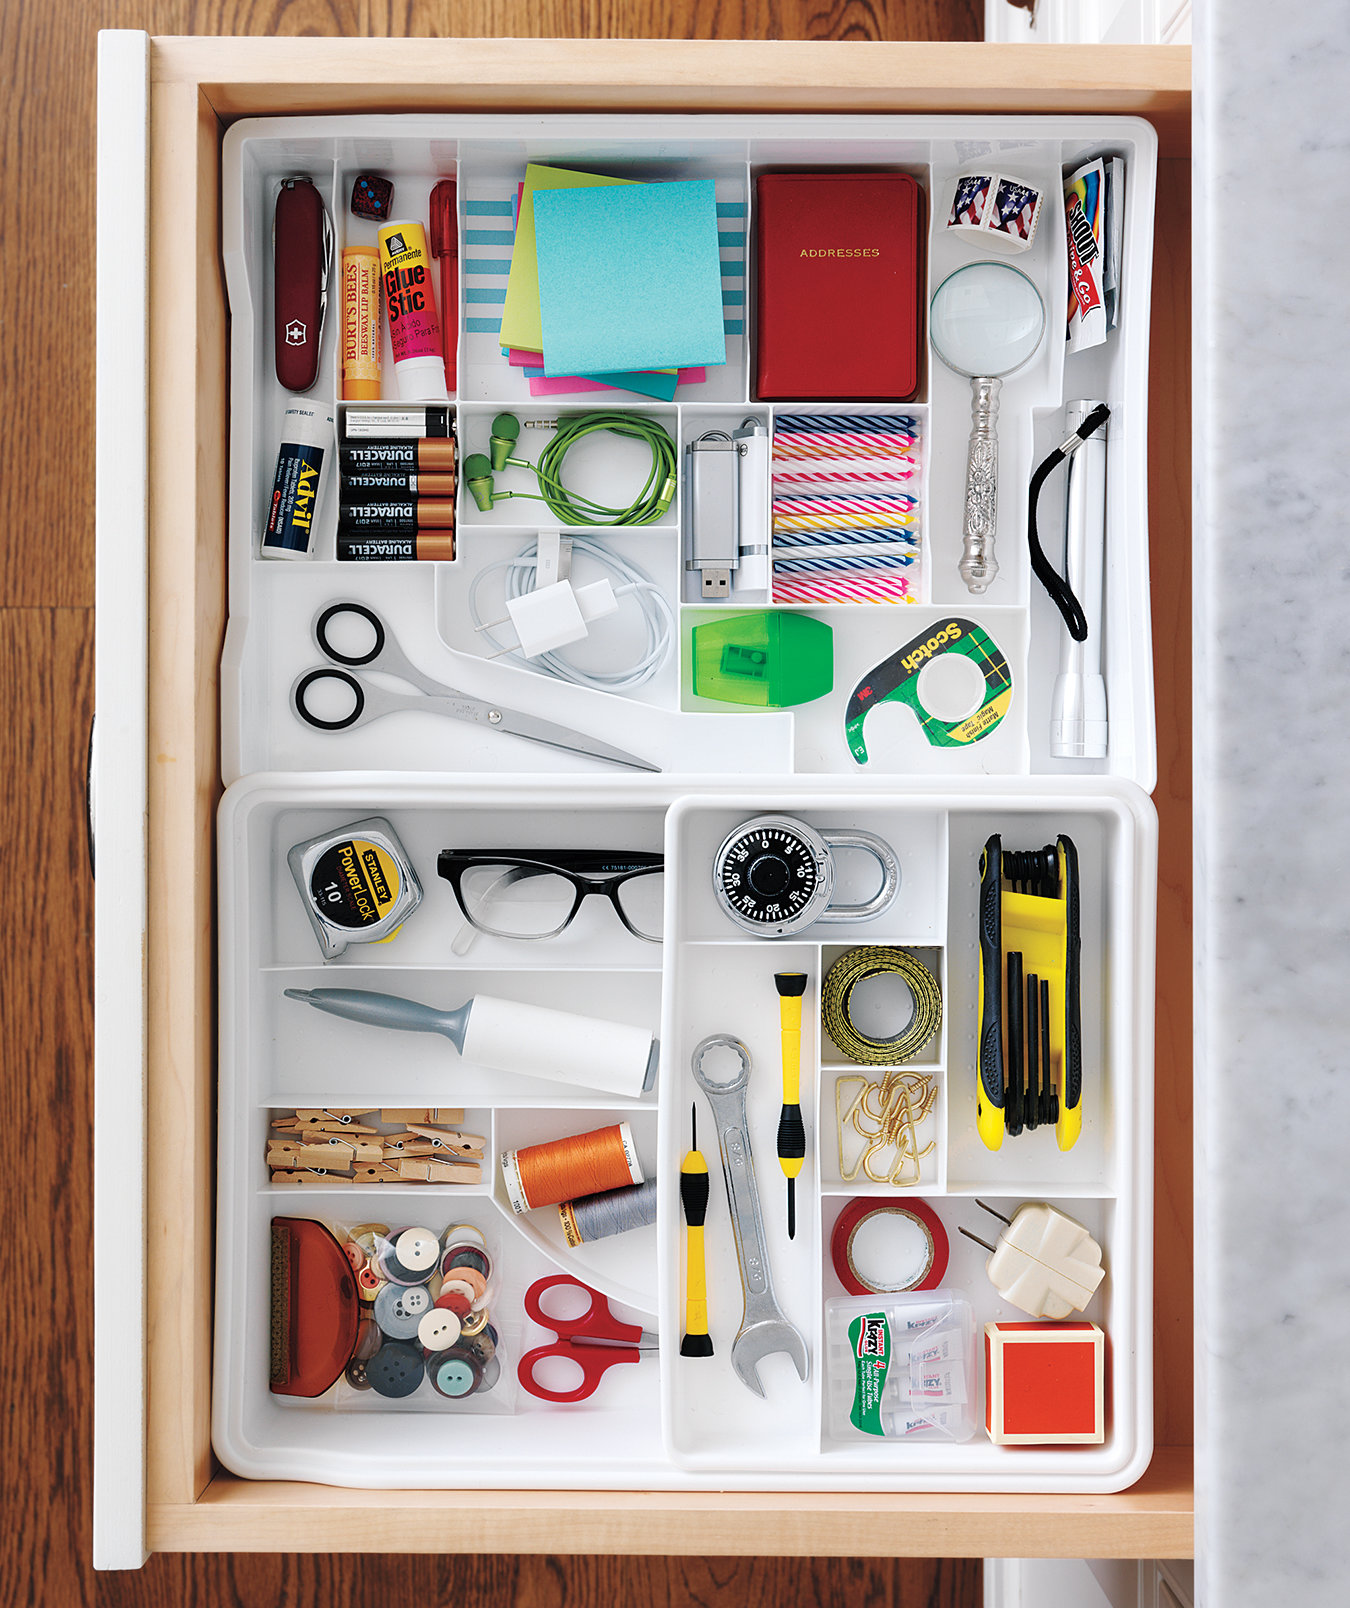 15 Organizing Ideas for Your Drawers - Real Simple